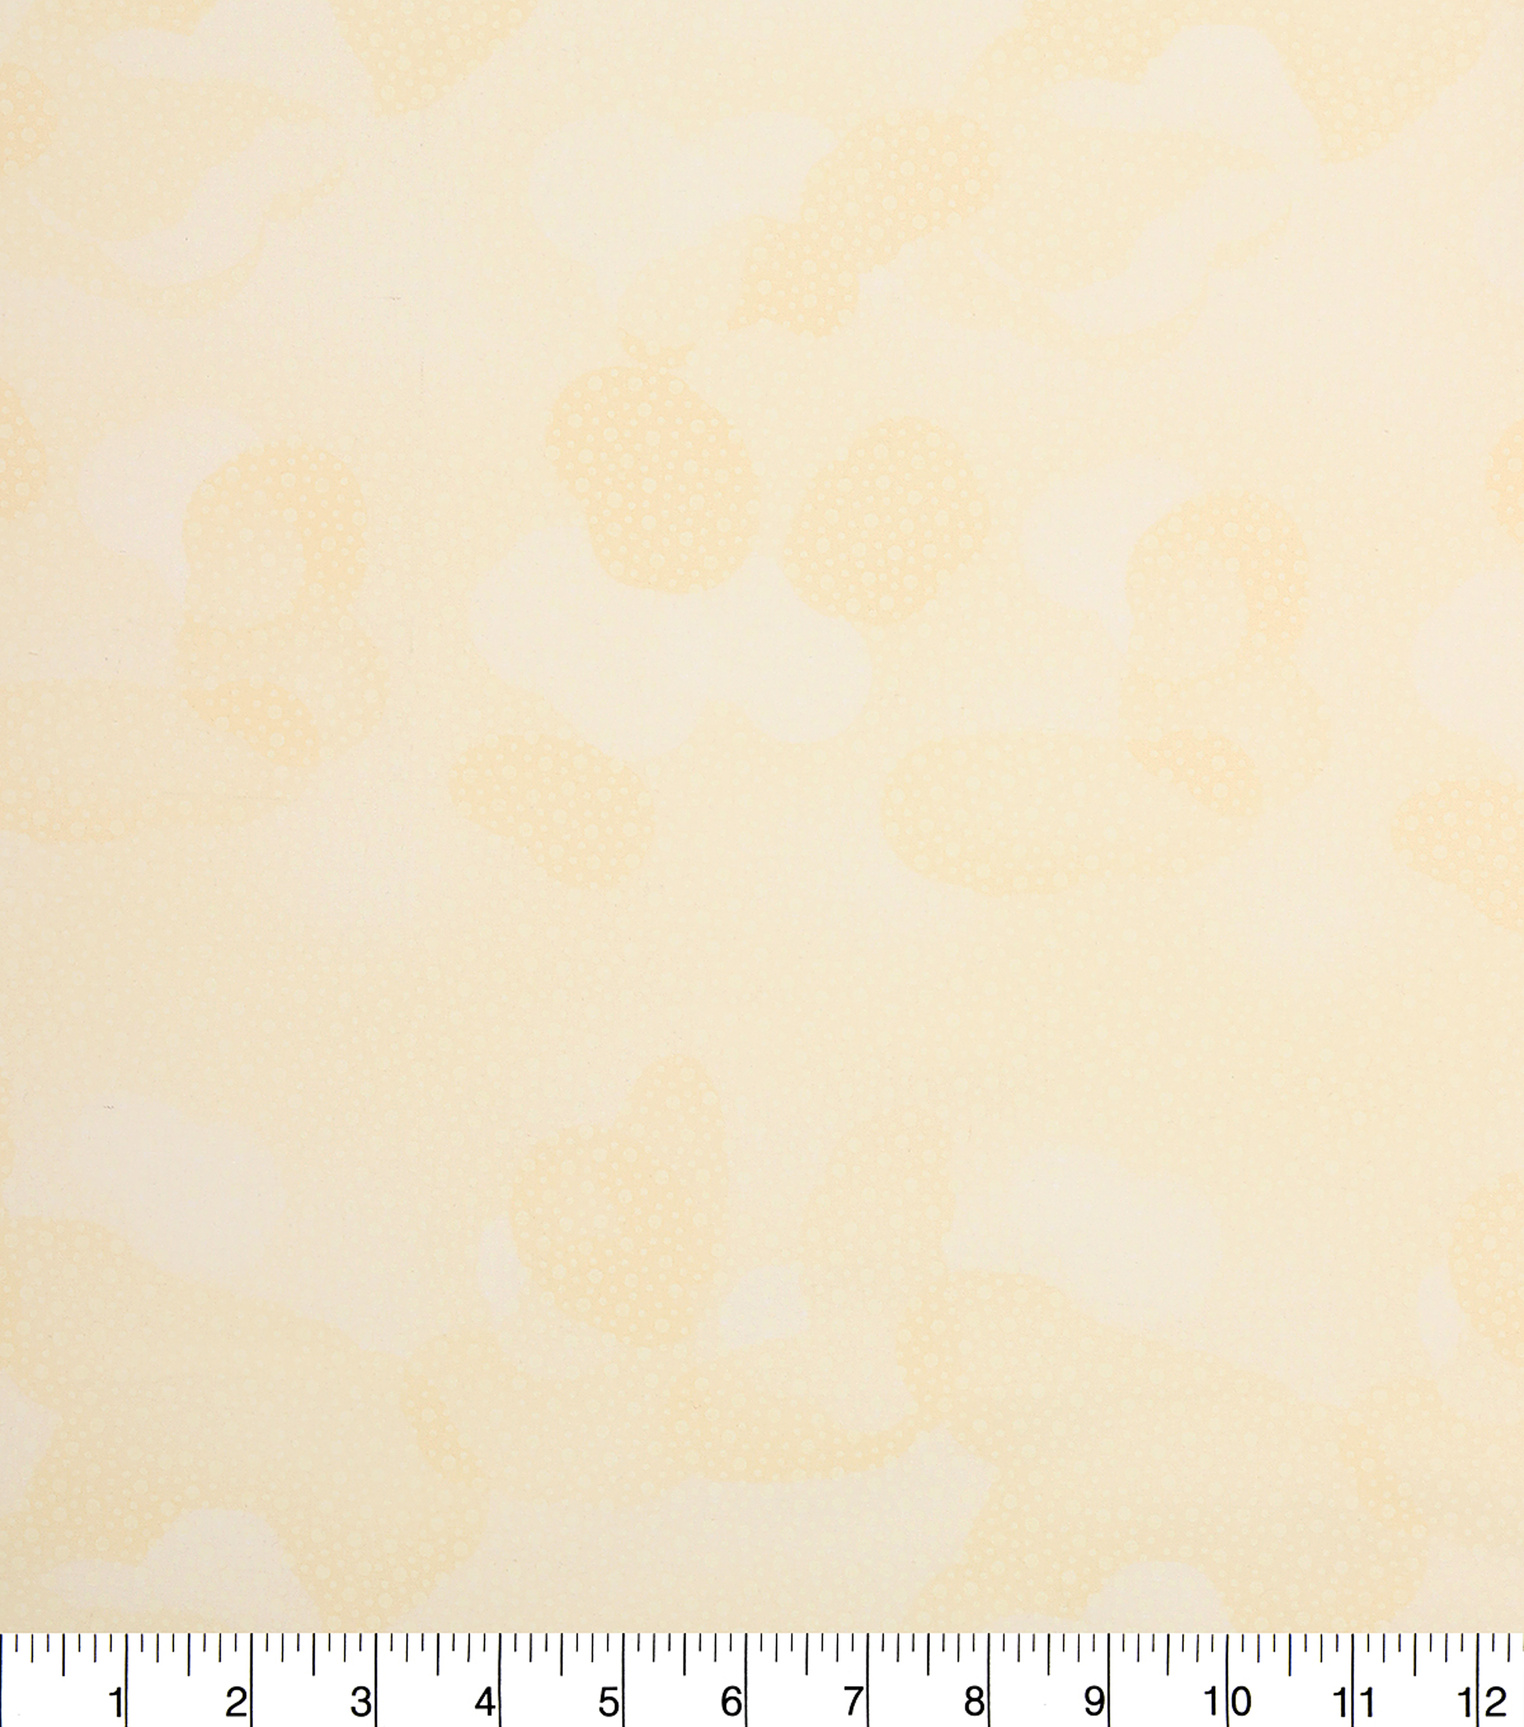 Keepsake Calico Cotton Fabric -Cream Dot Blender